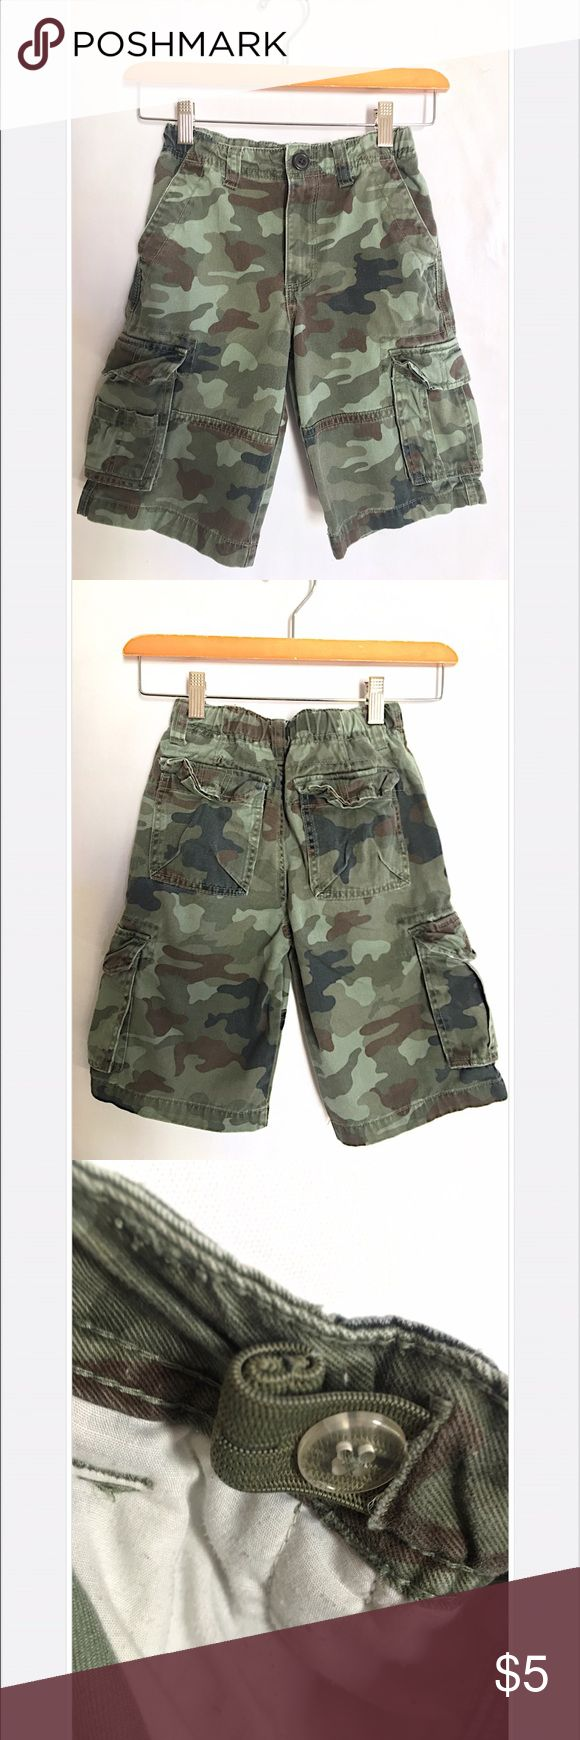 Cherokee Boys Cargo Camouflage Shorts Size 8 Cherokee Size 8 Camo Cargo Shorts w/ Adjustable Elastic Band on inside. In good condition and worn twice. Cherokee Bottoms Shorts